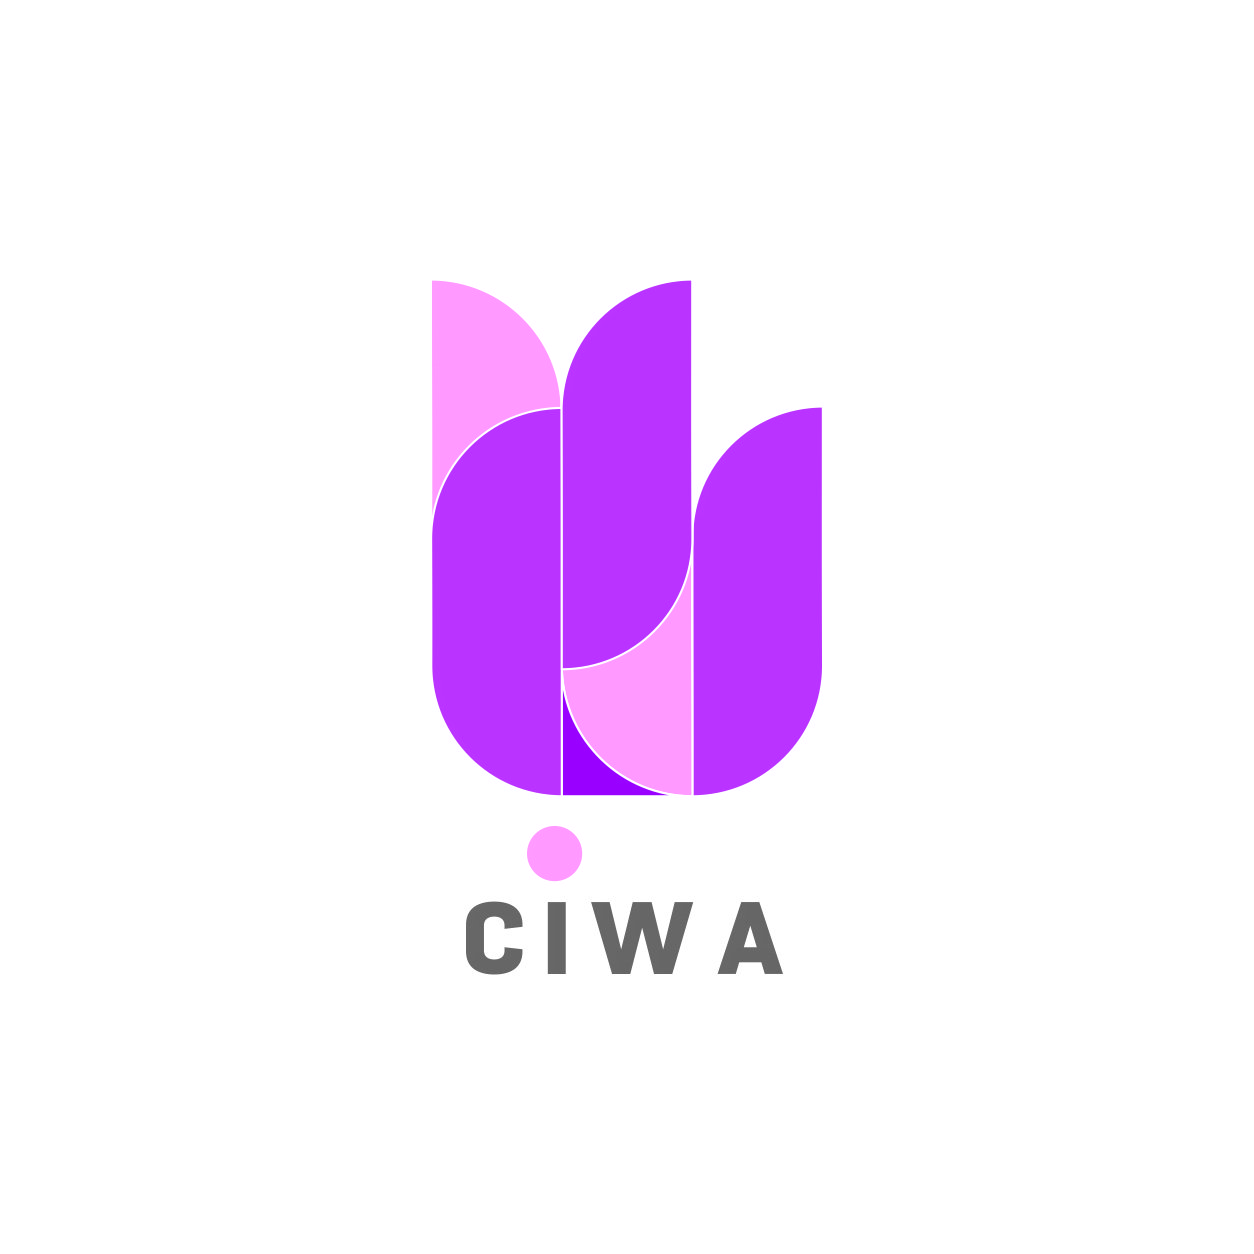 CIWA Express Cleaning